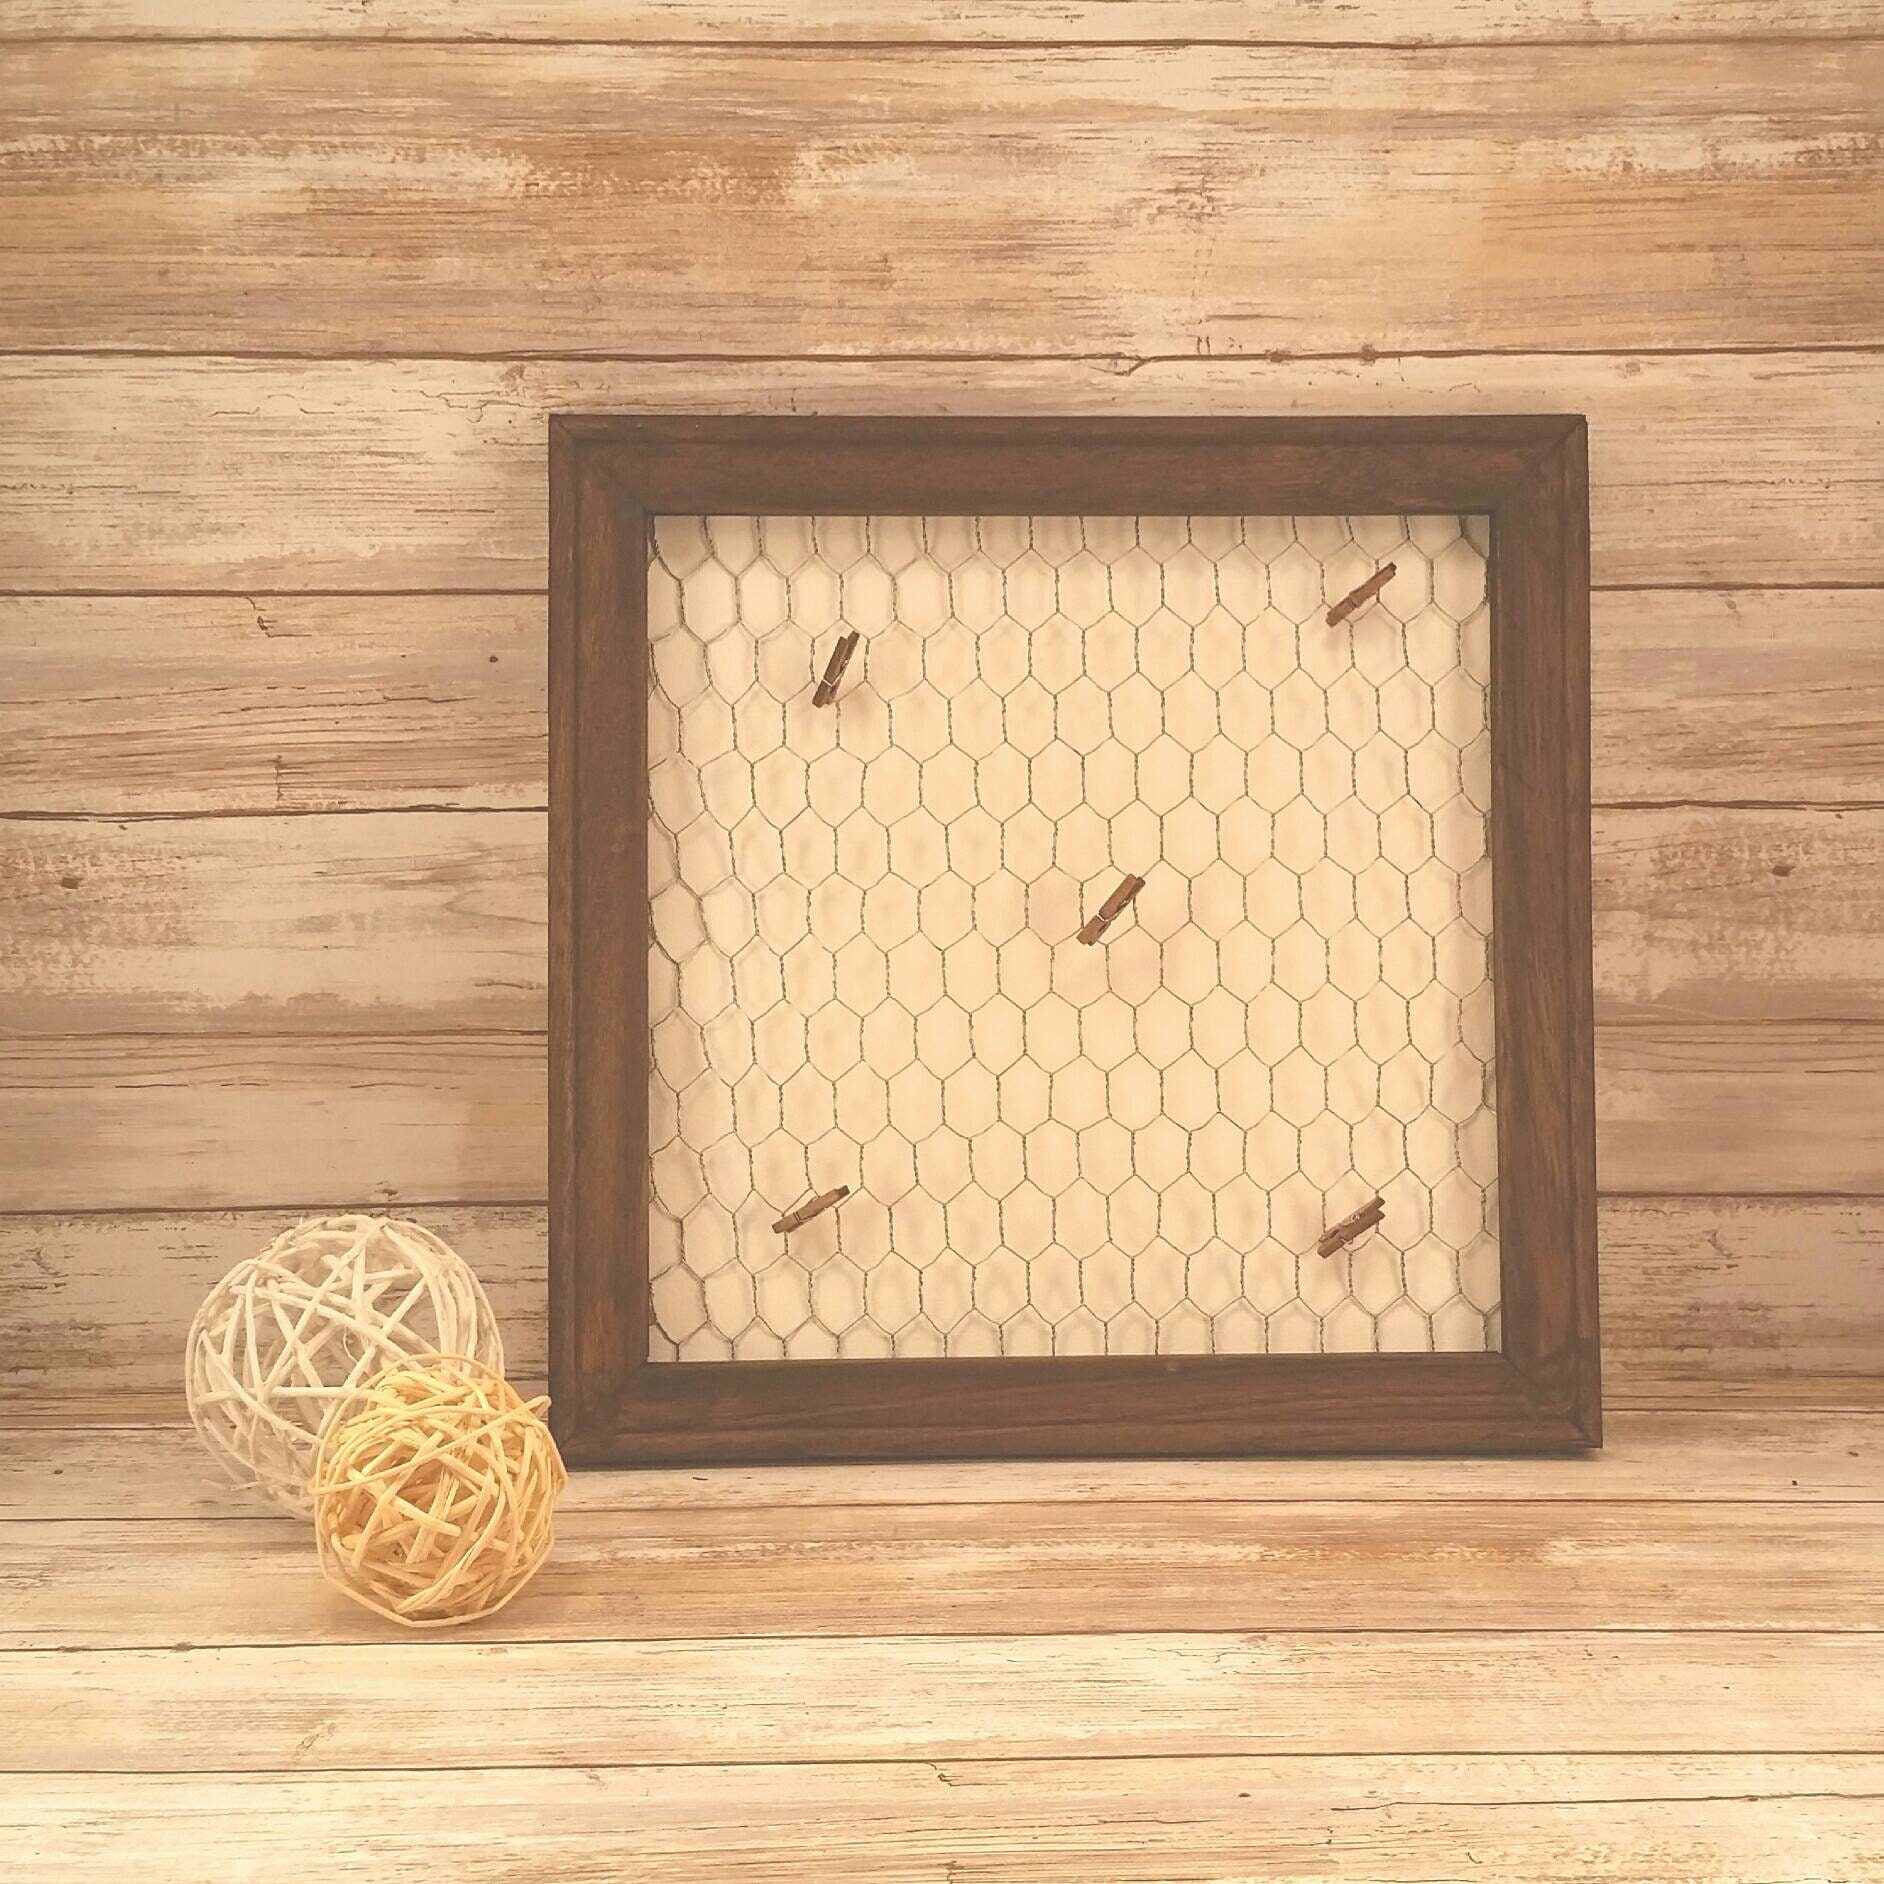 Chicken Wire Post A Note Framed Canvas Sign With Tiny Clothes Pins